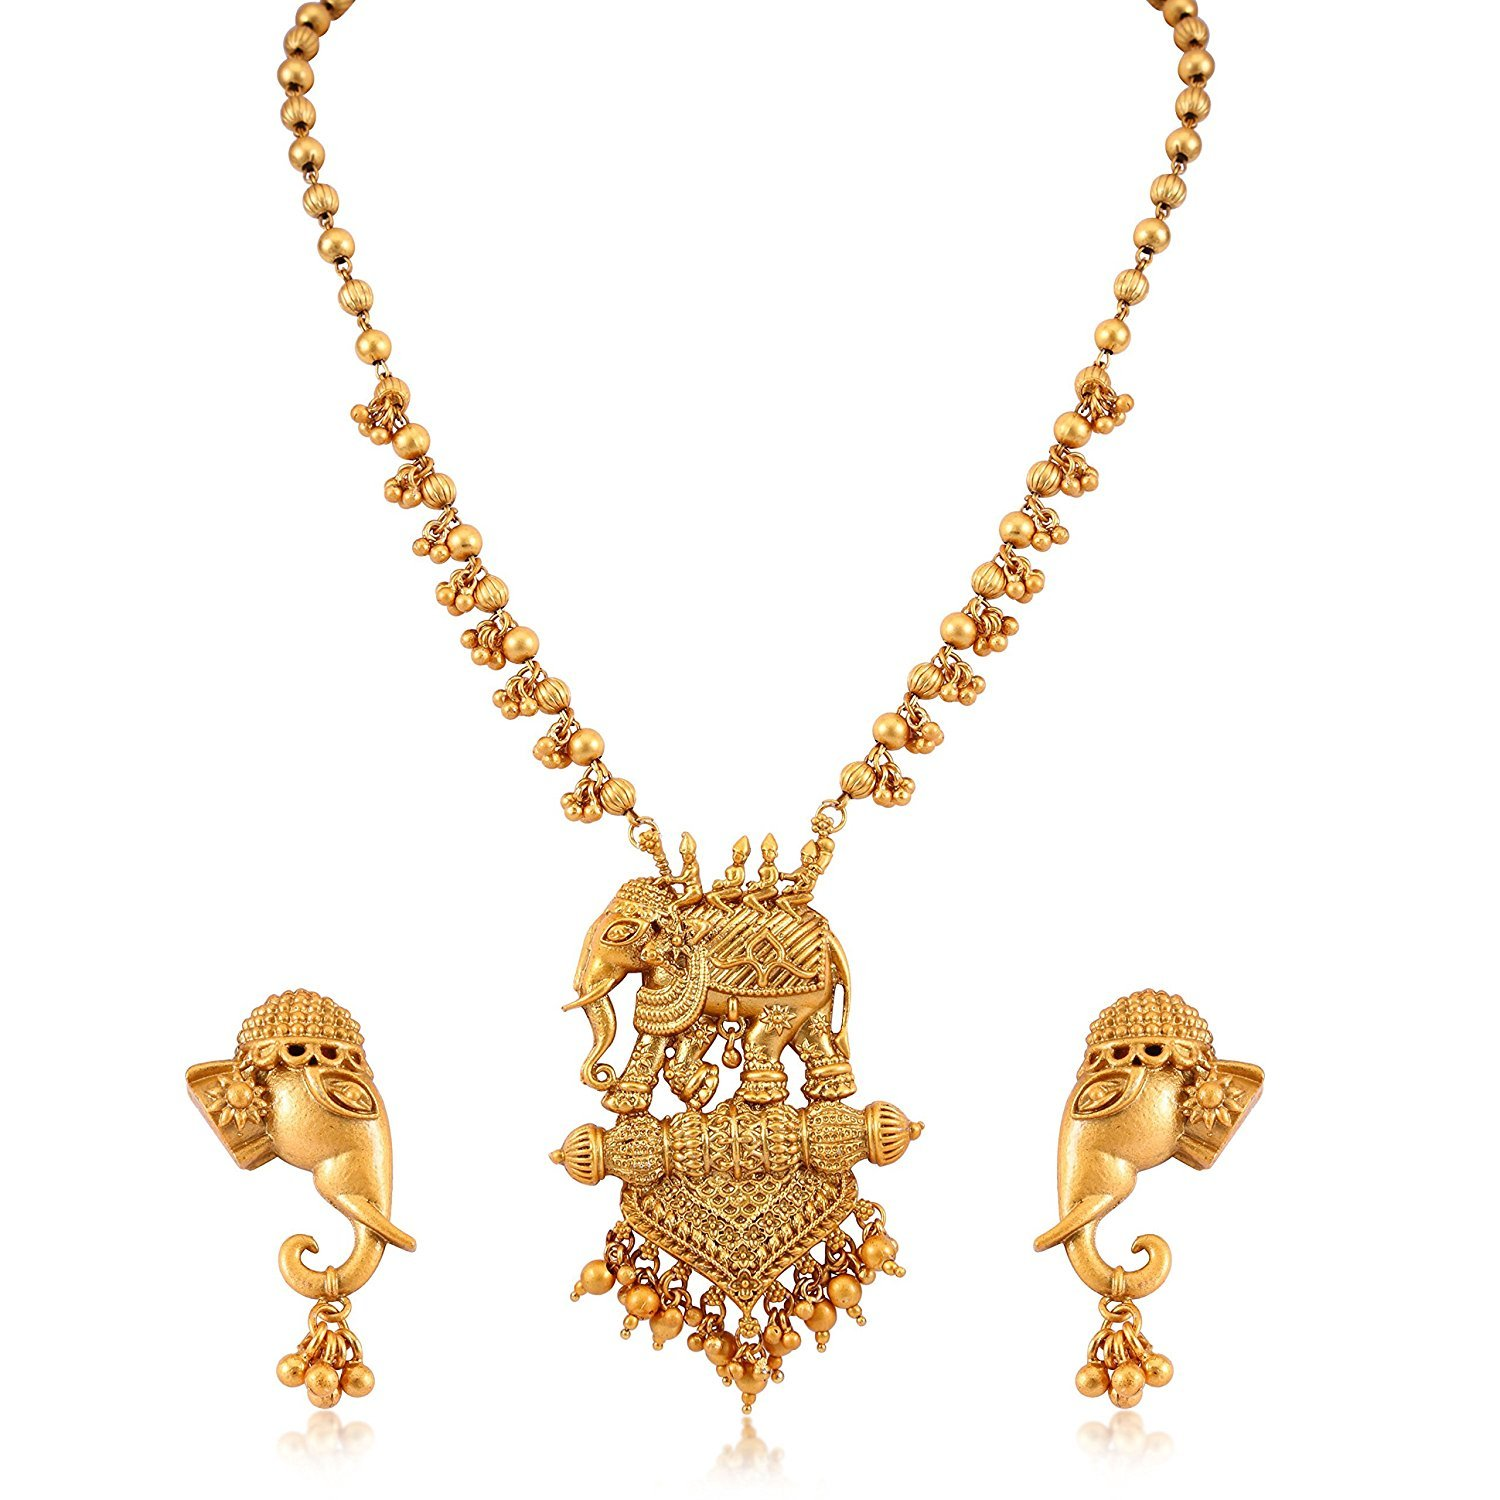 Buy Efulgenz Fashion Jewellery Antique Kundan Gold Plated Temple Traditional Designer Long Necklace Jewellery Set With Earrings For Women At Amazon In